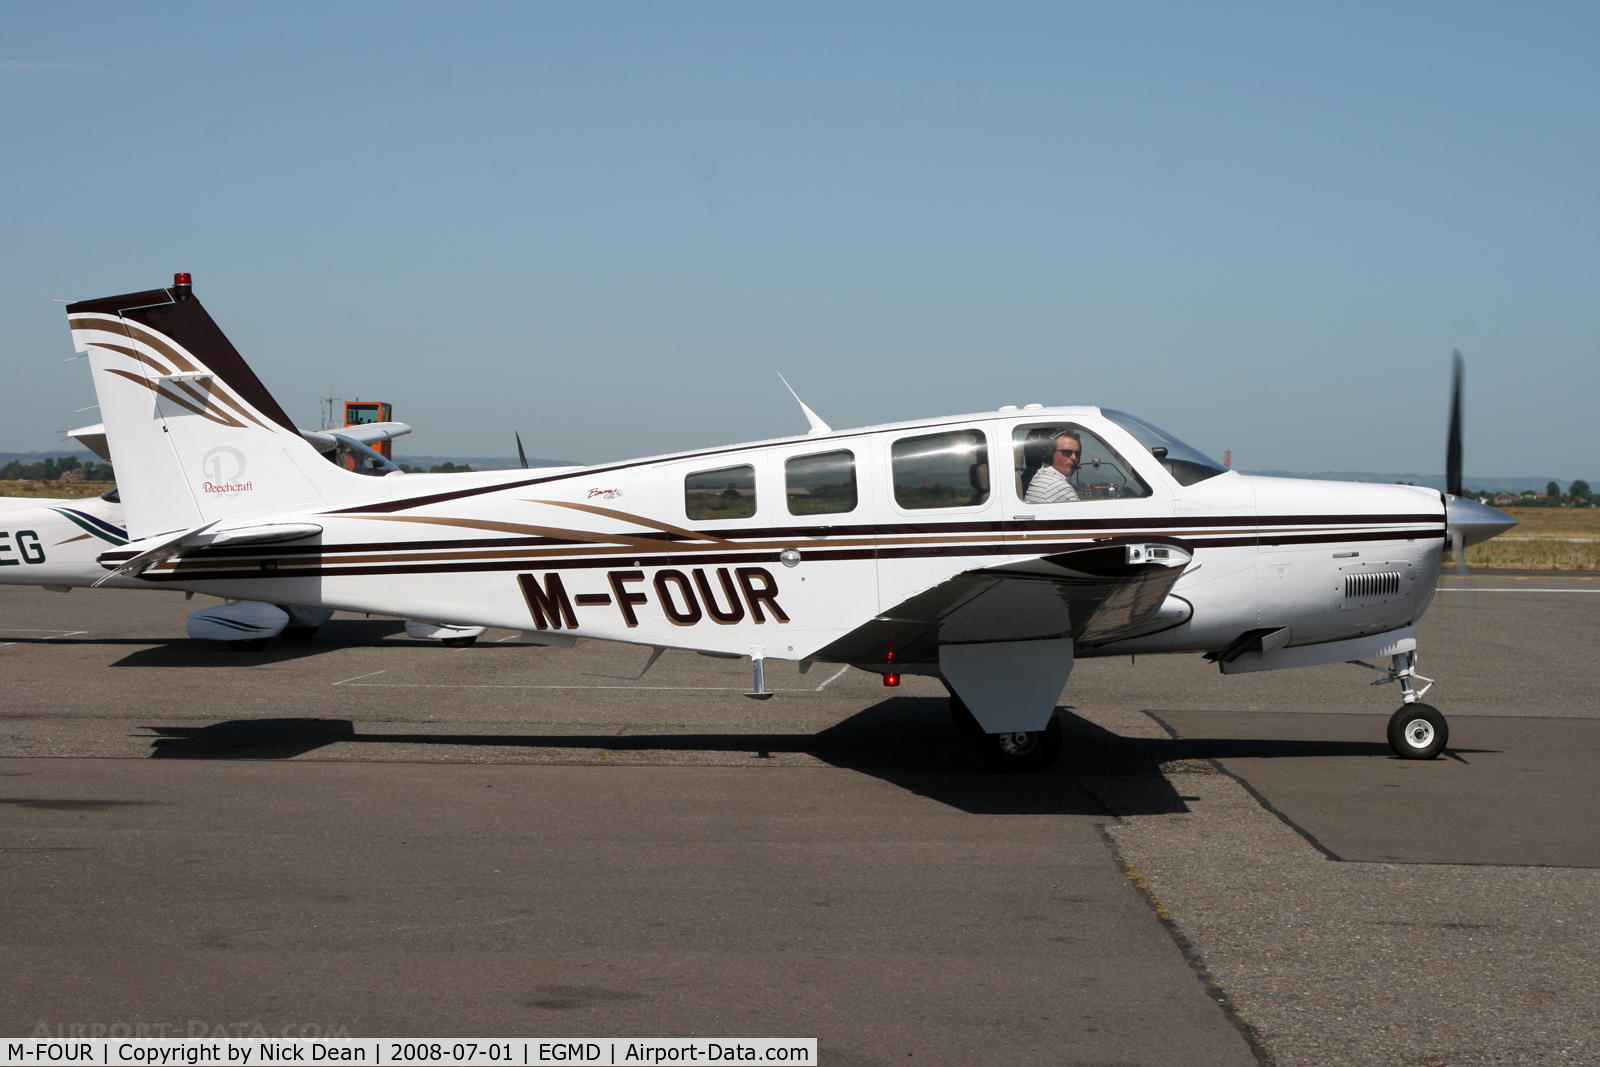 M-FOUR, Beechcraft A36 C/N E-3541, /